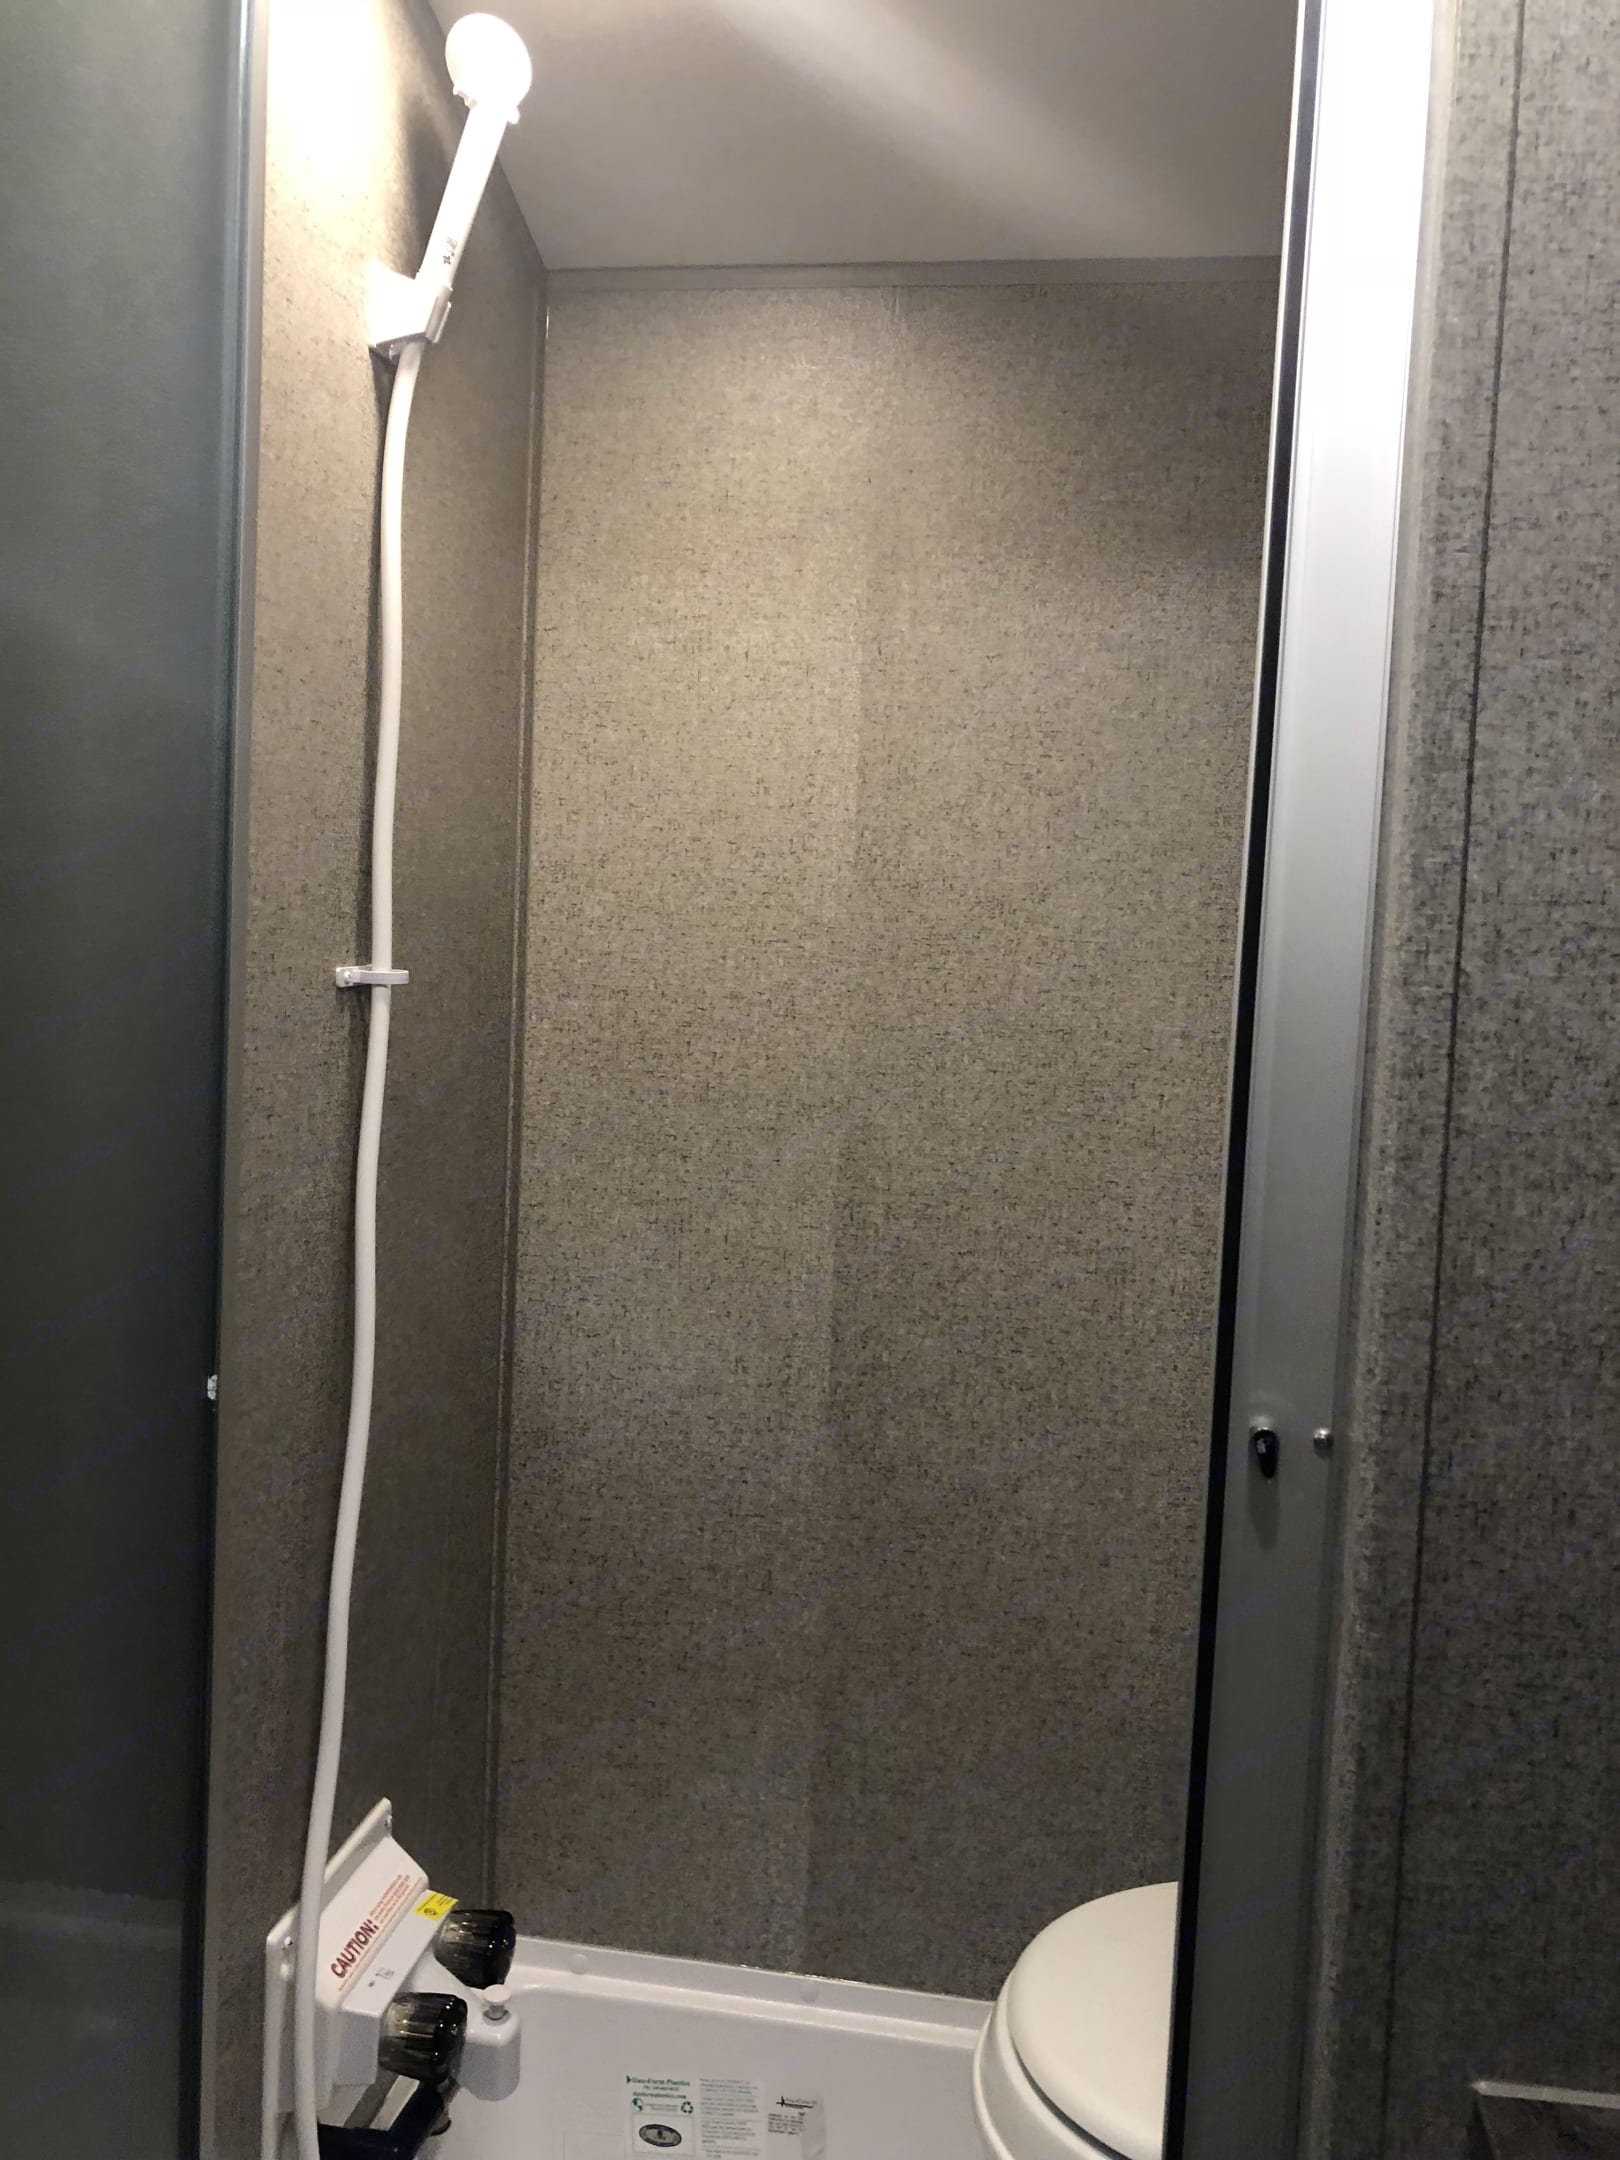 Bathroom with stool and shower. Flagstaff E-Pro 2018